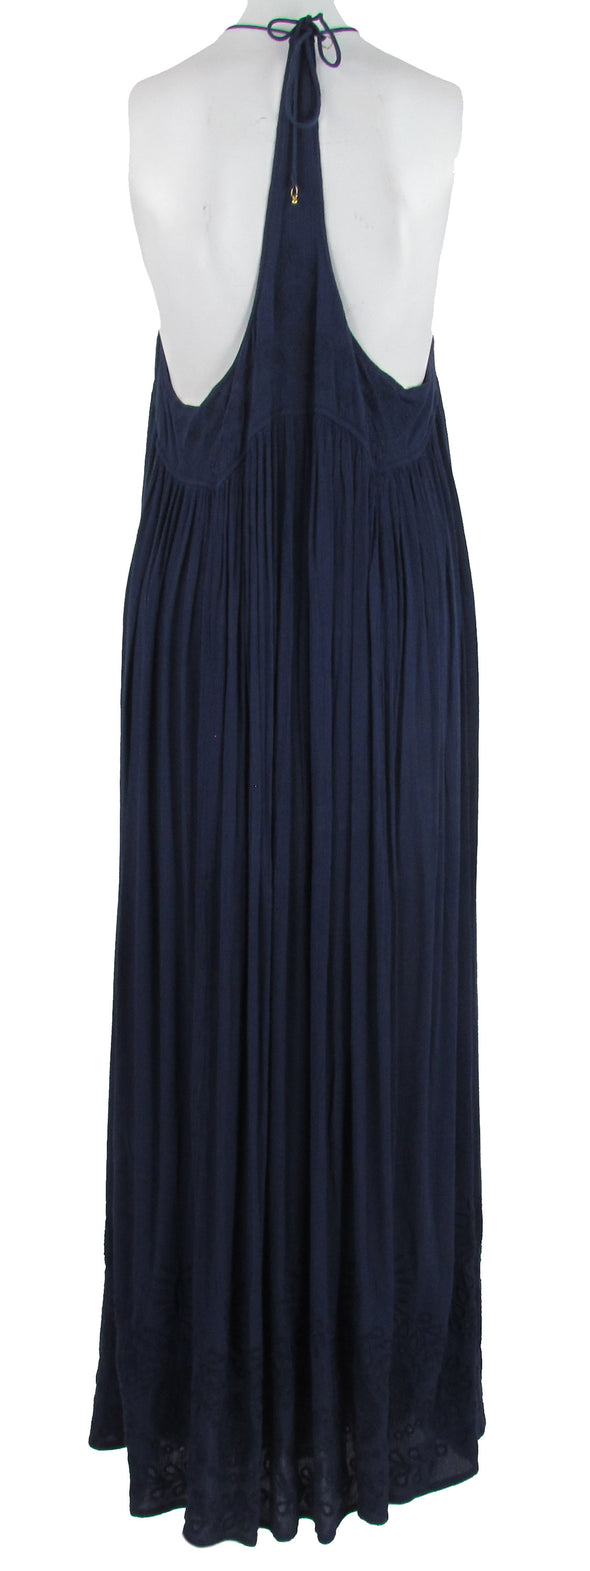 Free People Women's Embroidered Elaine Maxi Slip Dress Navy Blue Size Medium